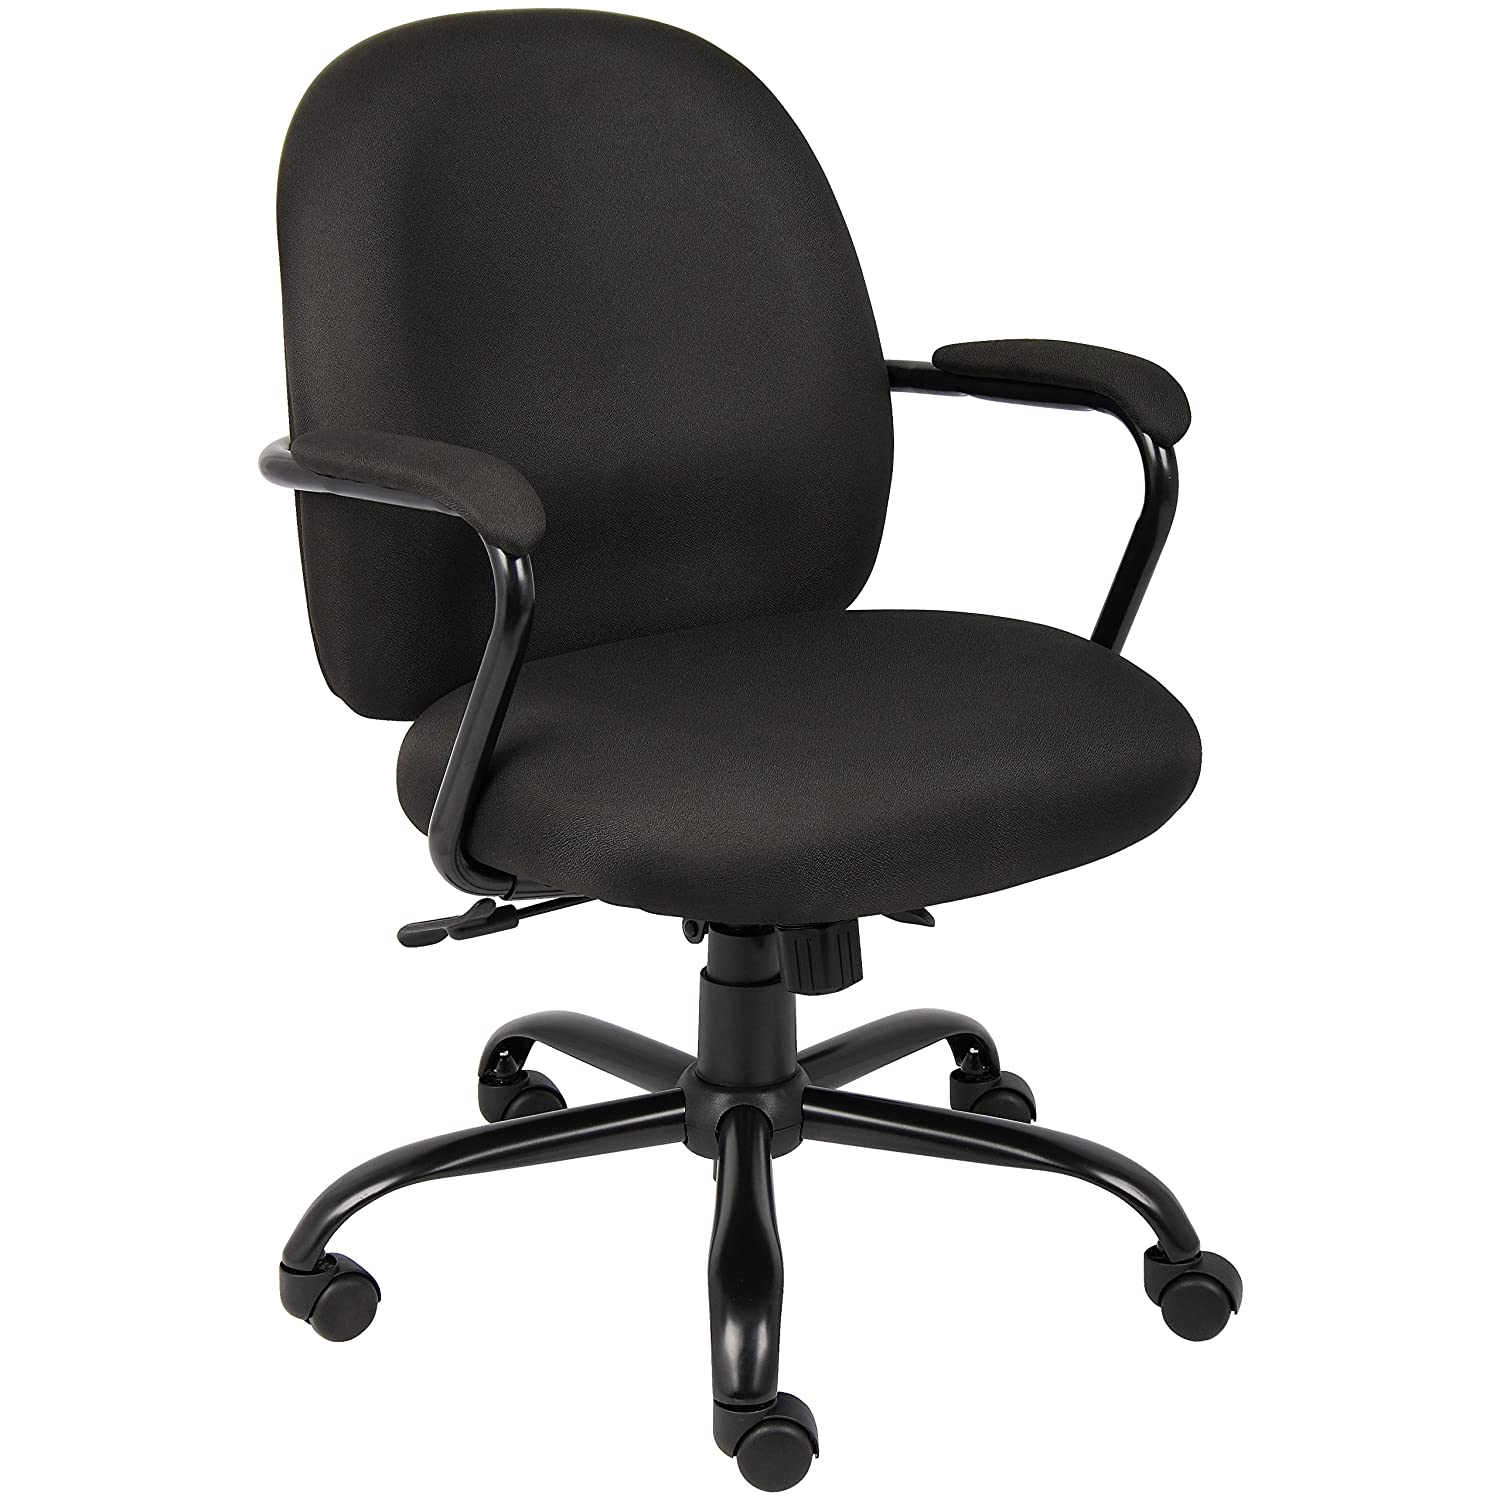 Best Heavy Duty fice Chairs Heavy Duty fice Chair Reviews